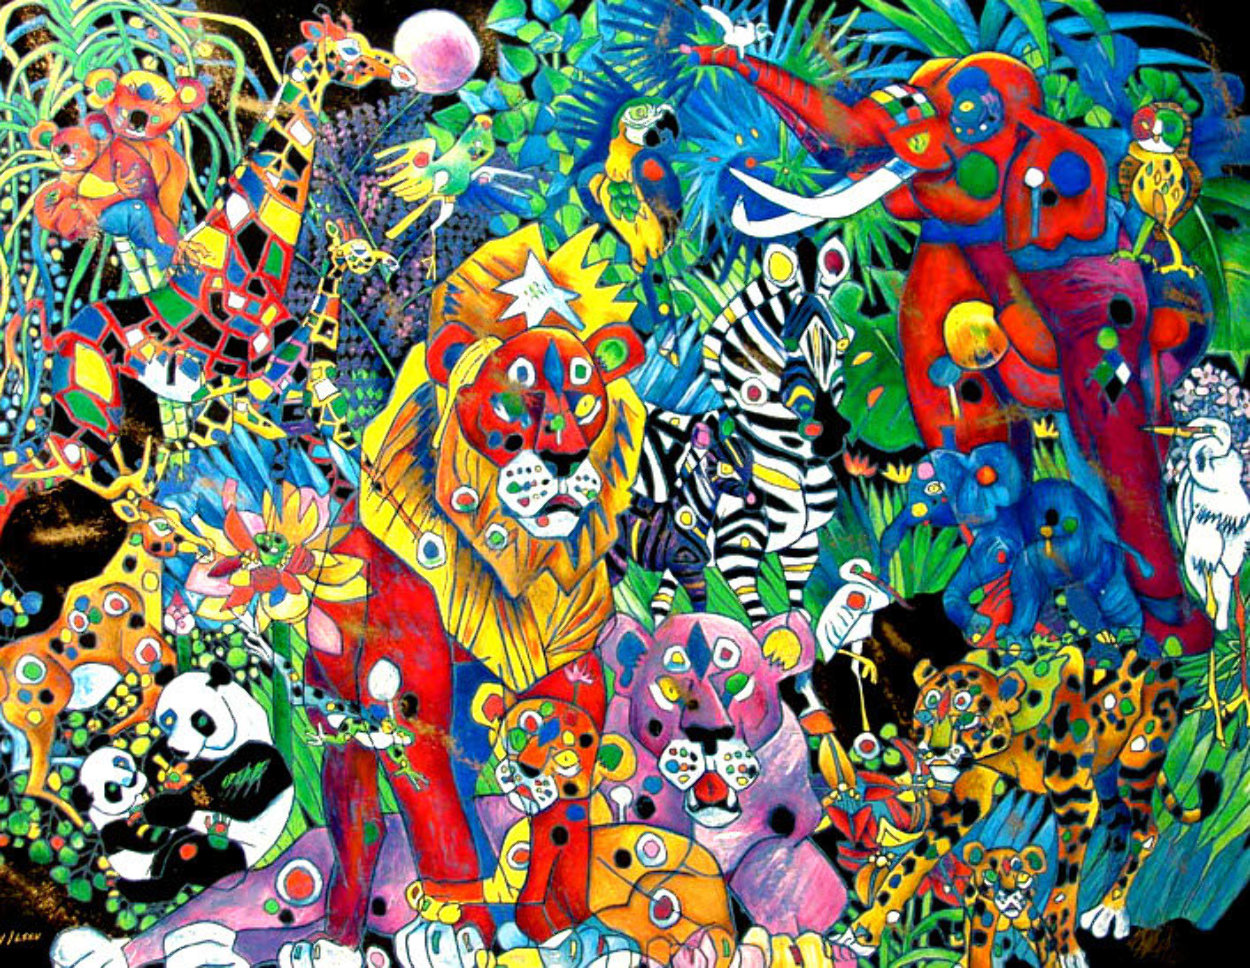 My World II 1999 Limited Edition Print by Tie-Feng Jiang